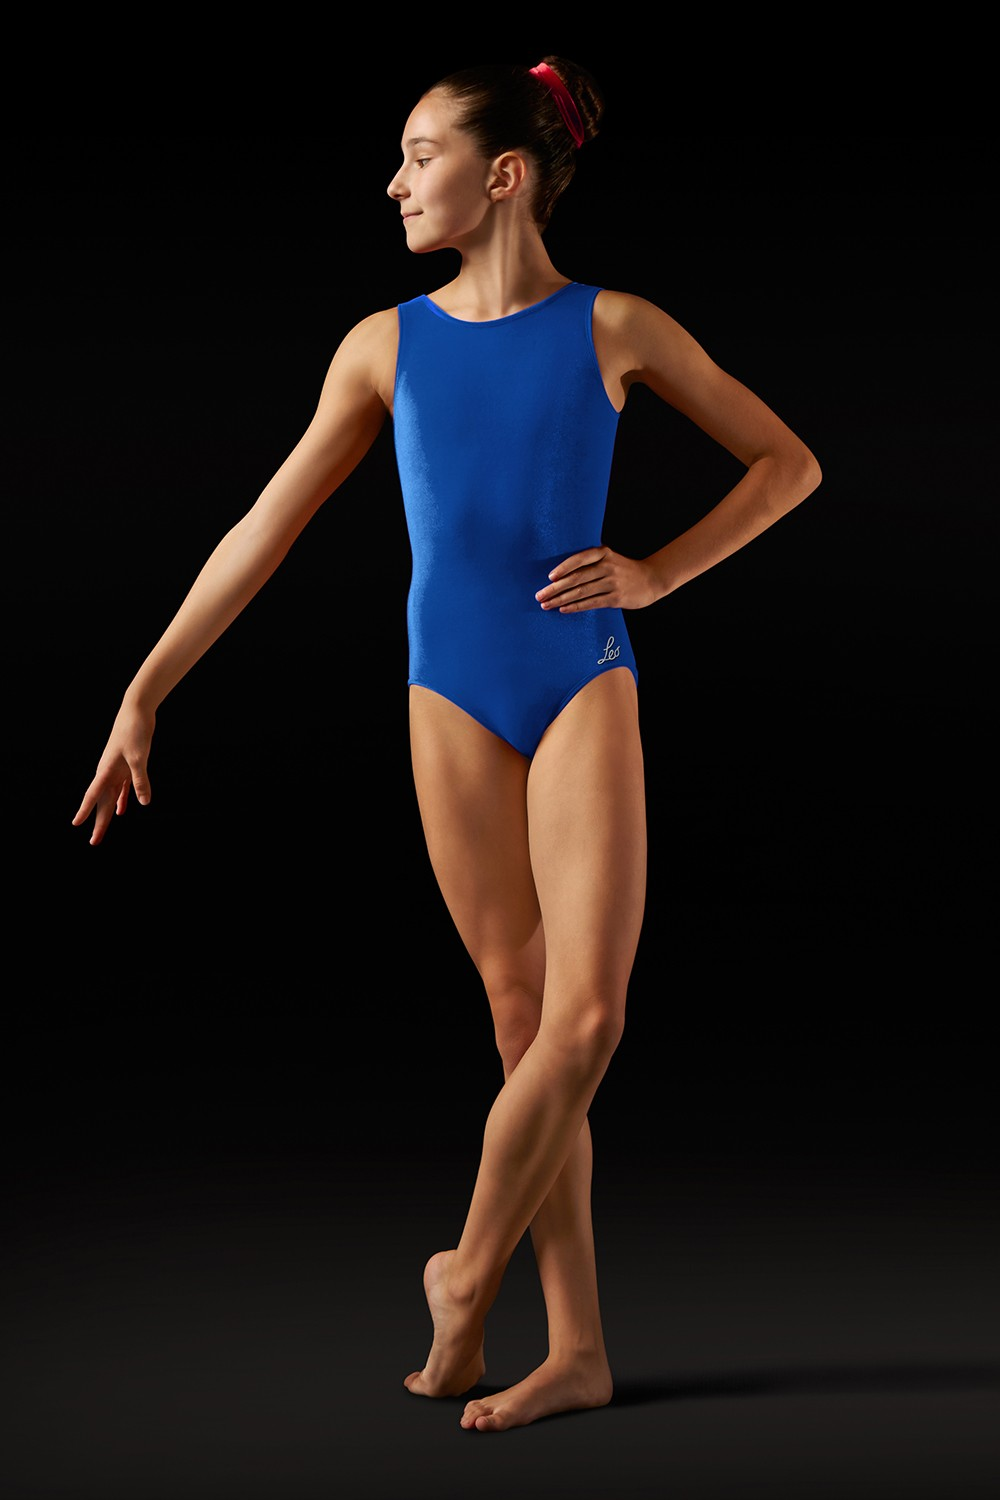 Tank Trikot Aus Samt Women's Gymnastics Leotards